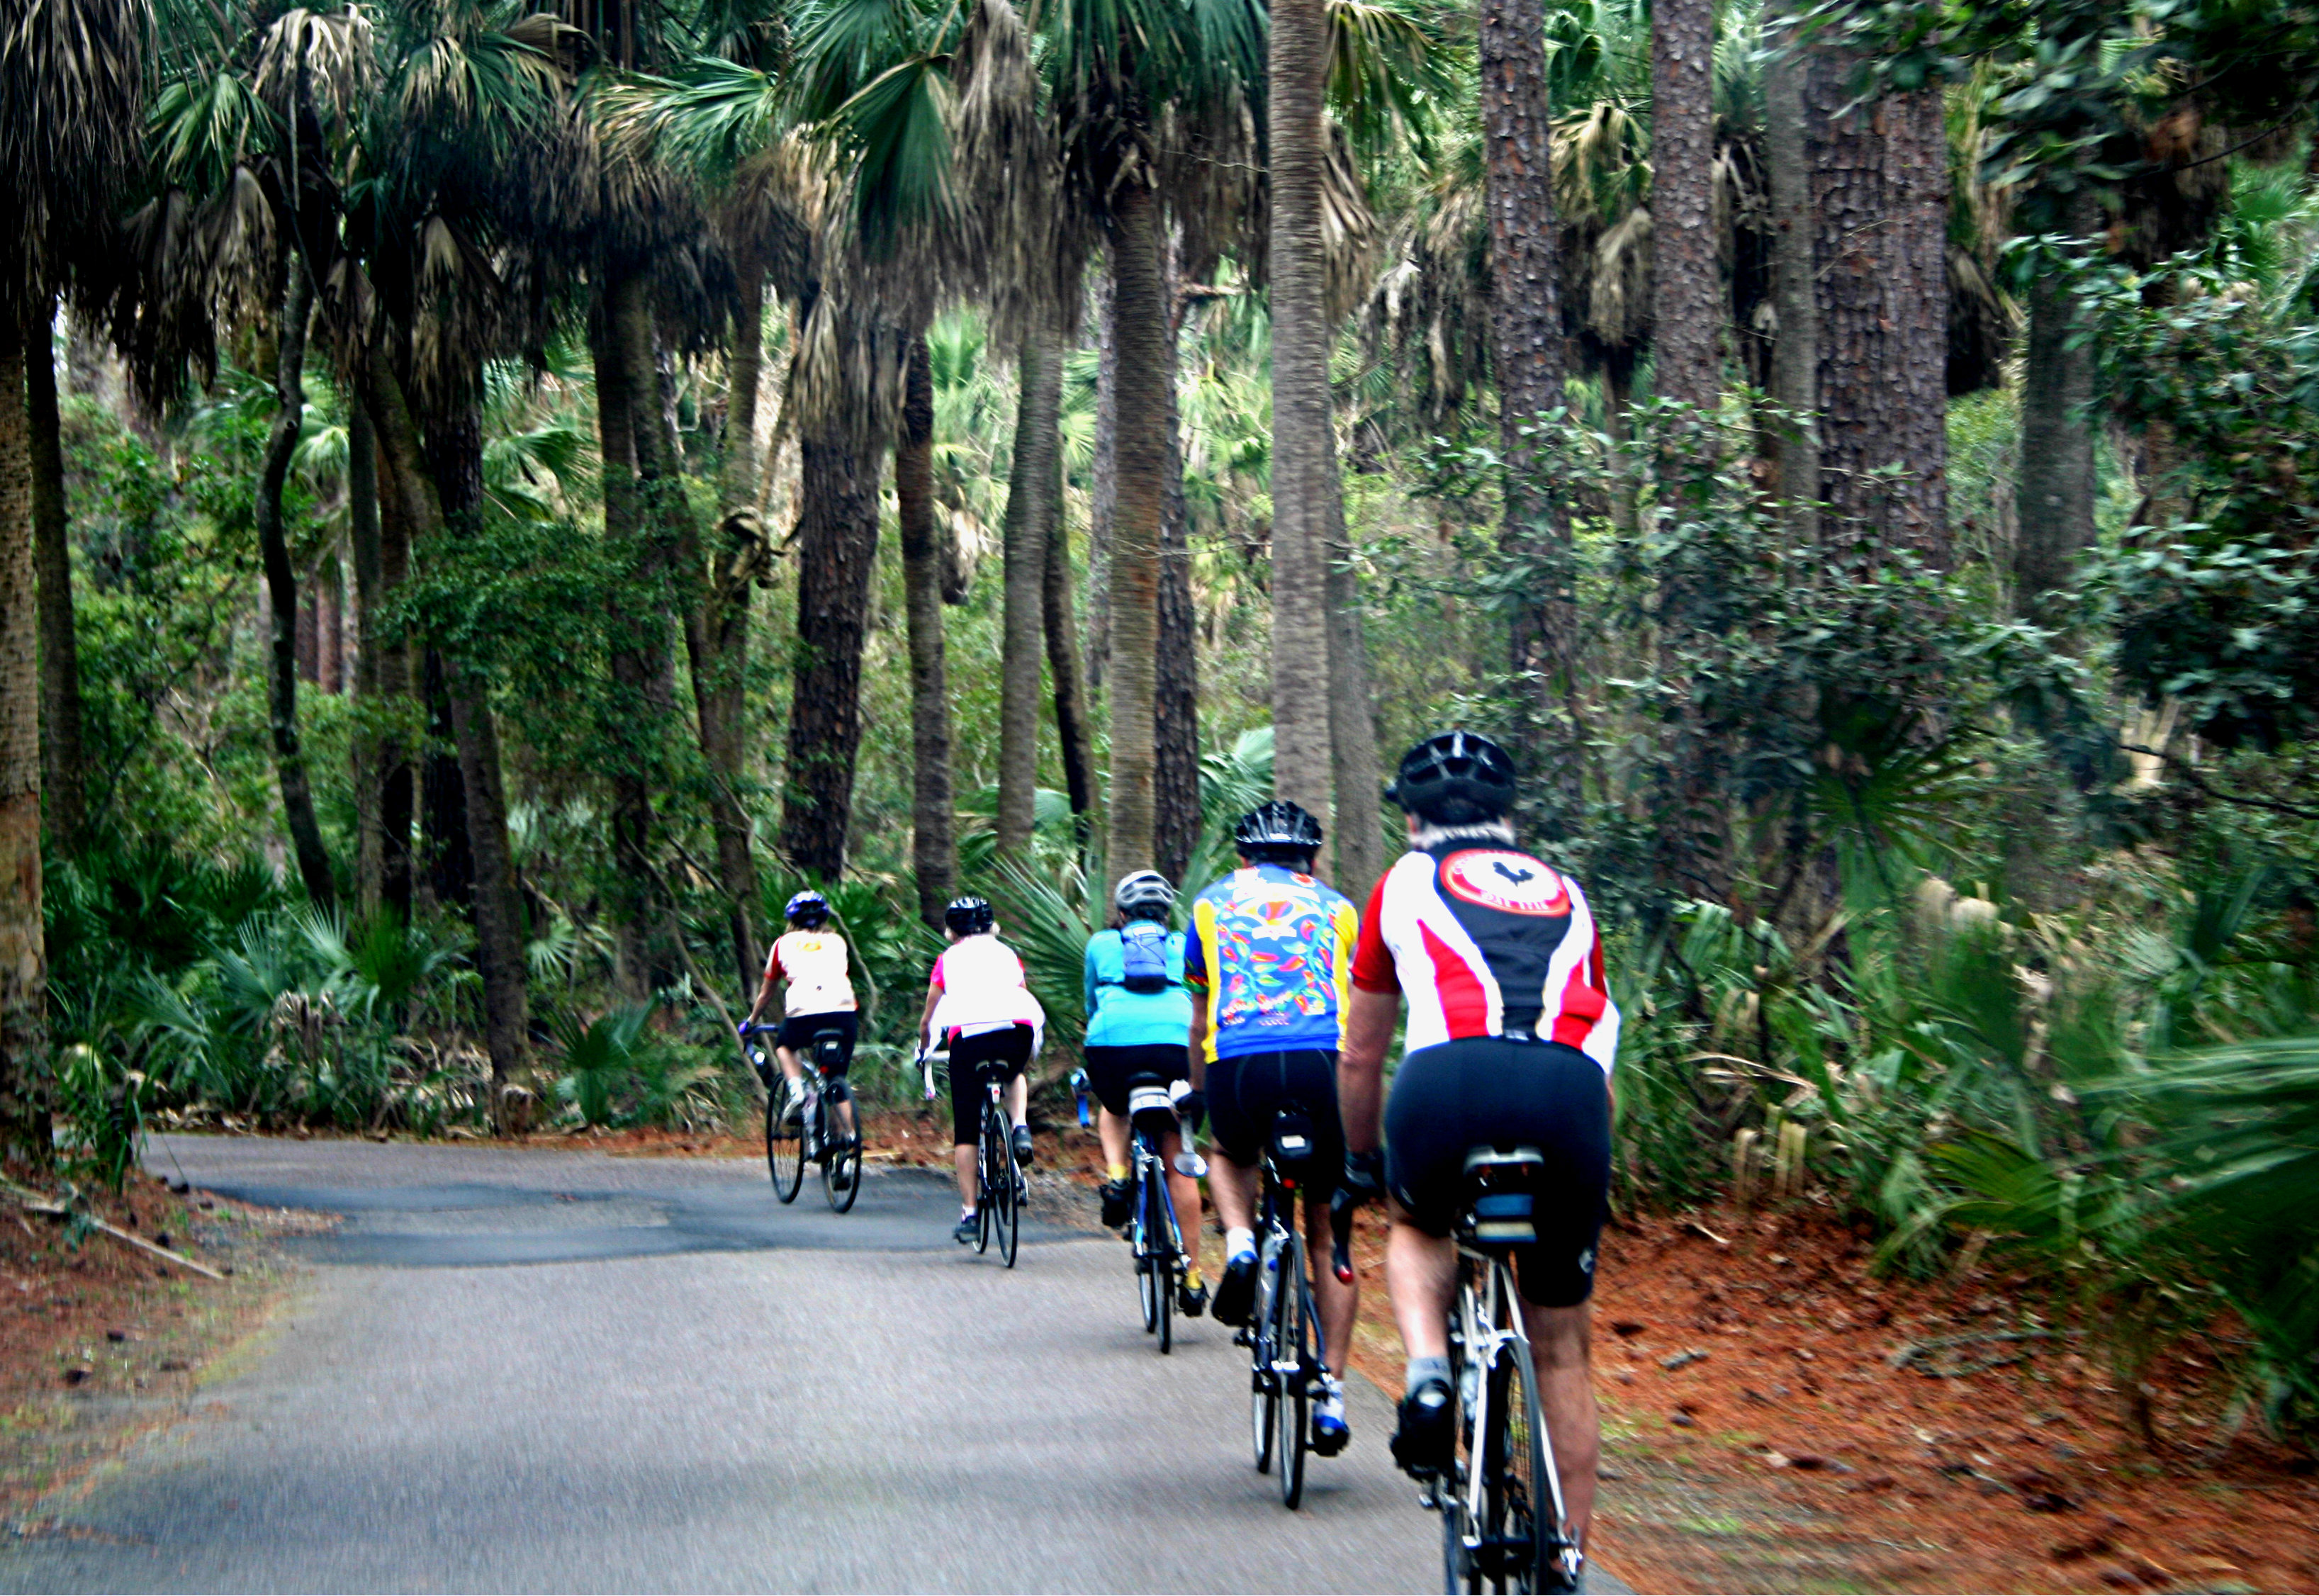 Hunting Island offers lots of options. Bicycling, hiking along one of the trails, going for a challenging run on the beach or even taking a stroll while searching for shells